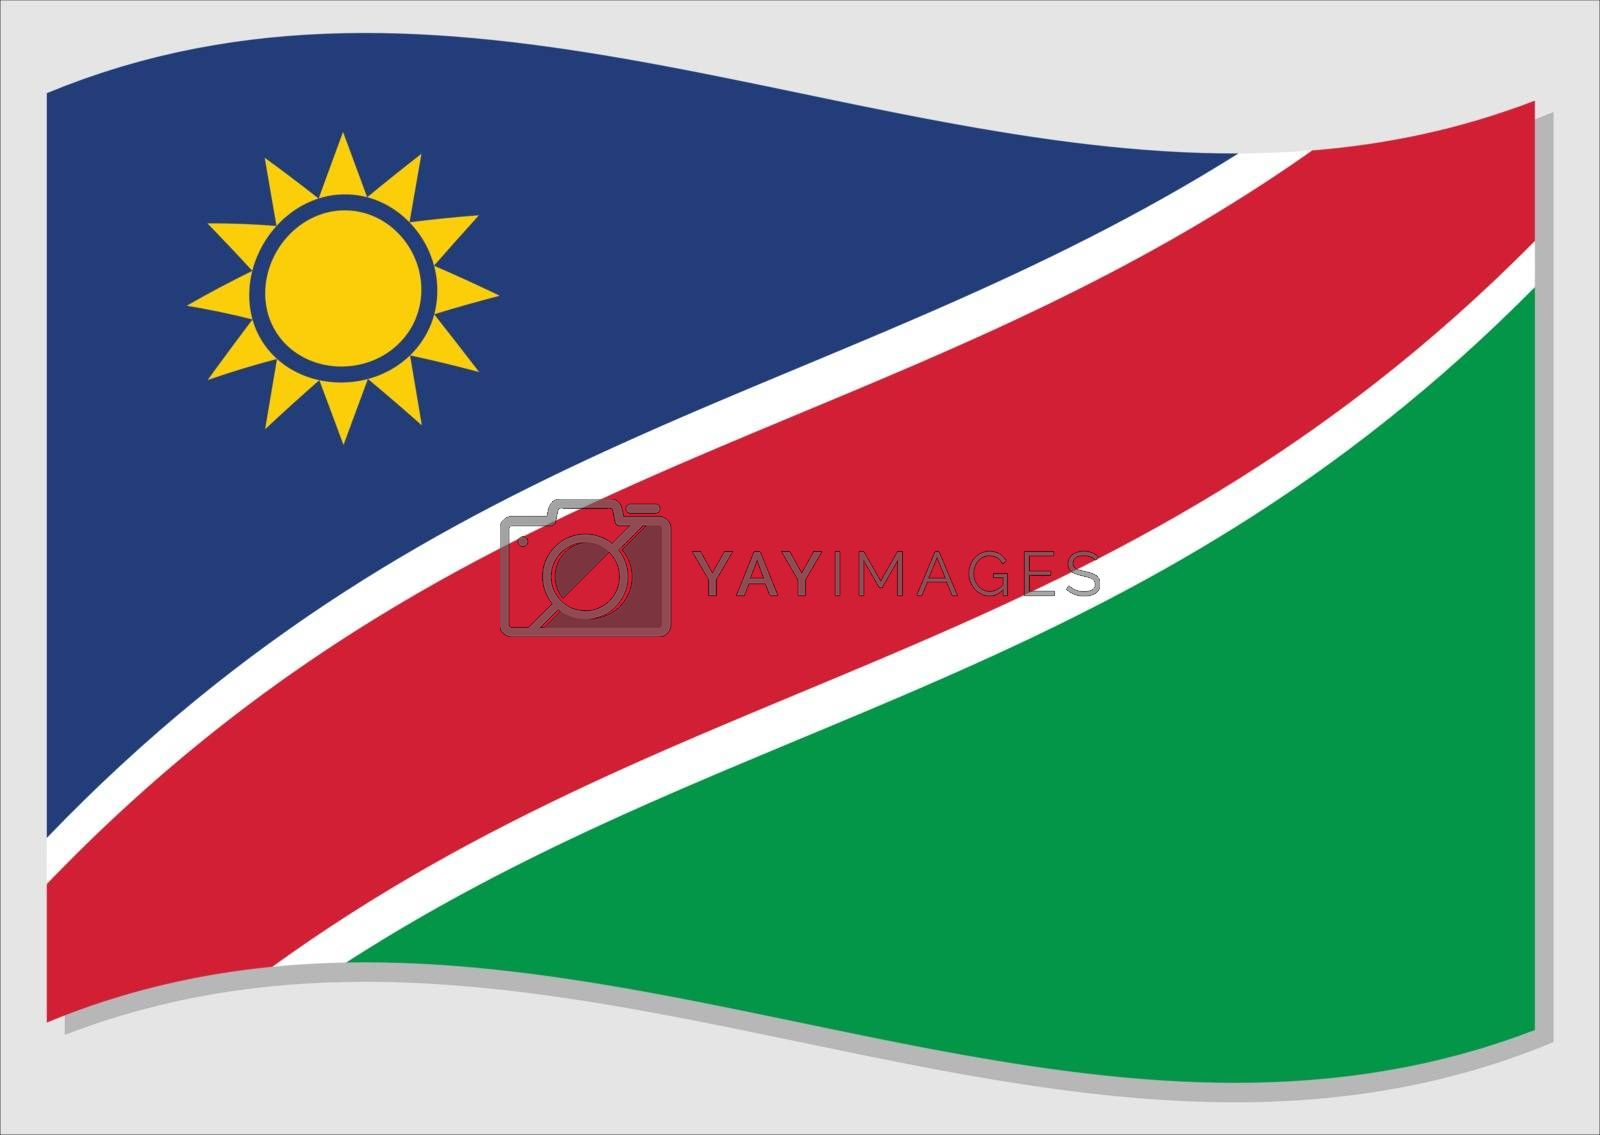 Waving flag of Namibia vector graphic. Waving Namibian flag illustration. Namibia country flag wavin in the wind is a symbol of freedom and independence.